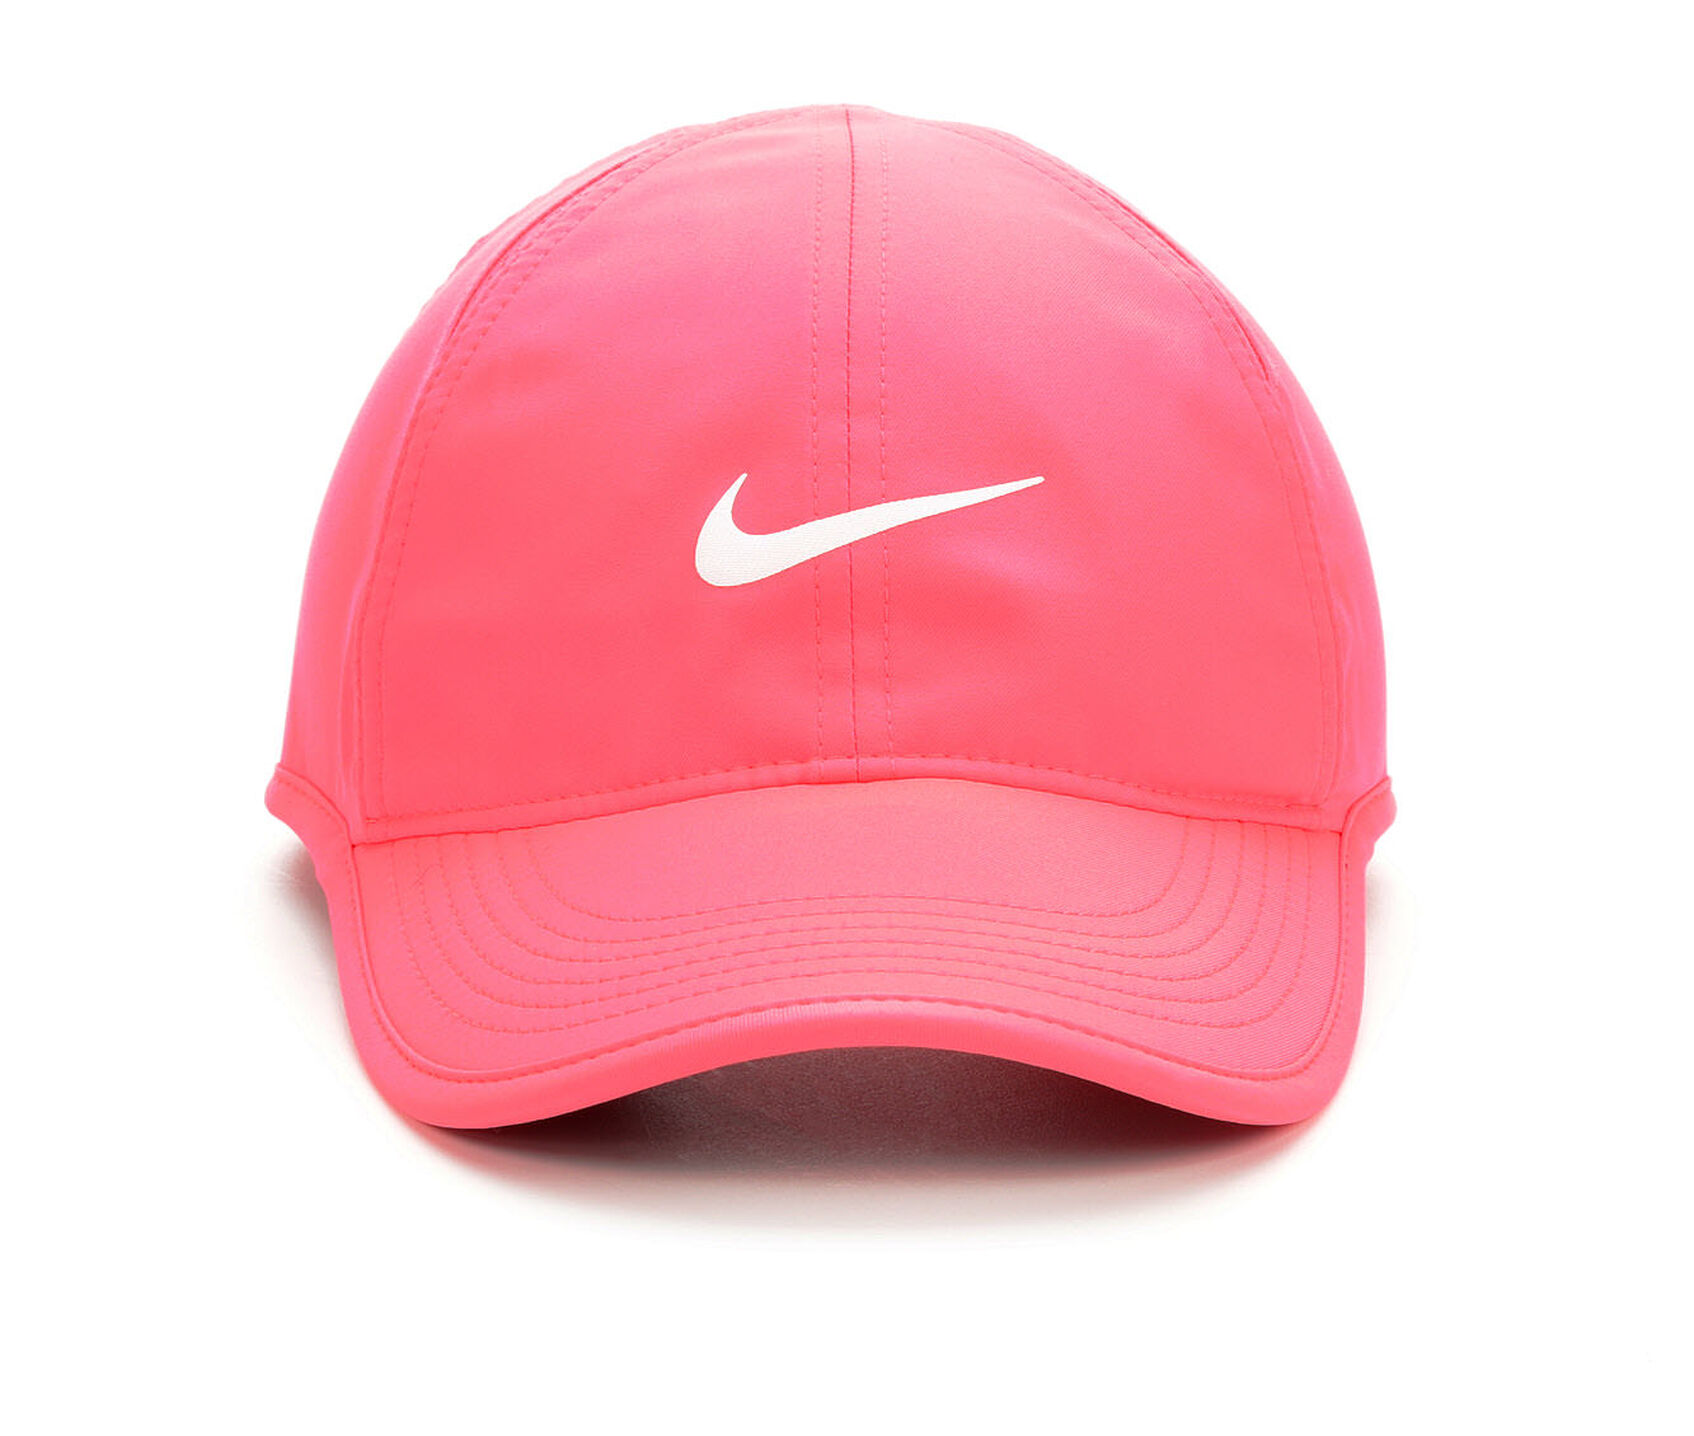 Nike Featherlight Adjustable Cap. Carousel Controls ebfbea4c8cf